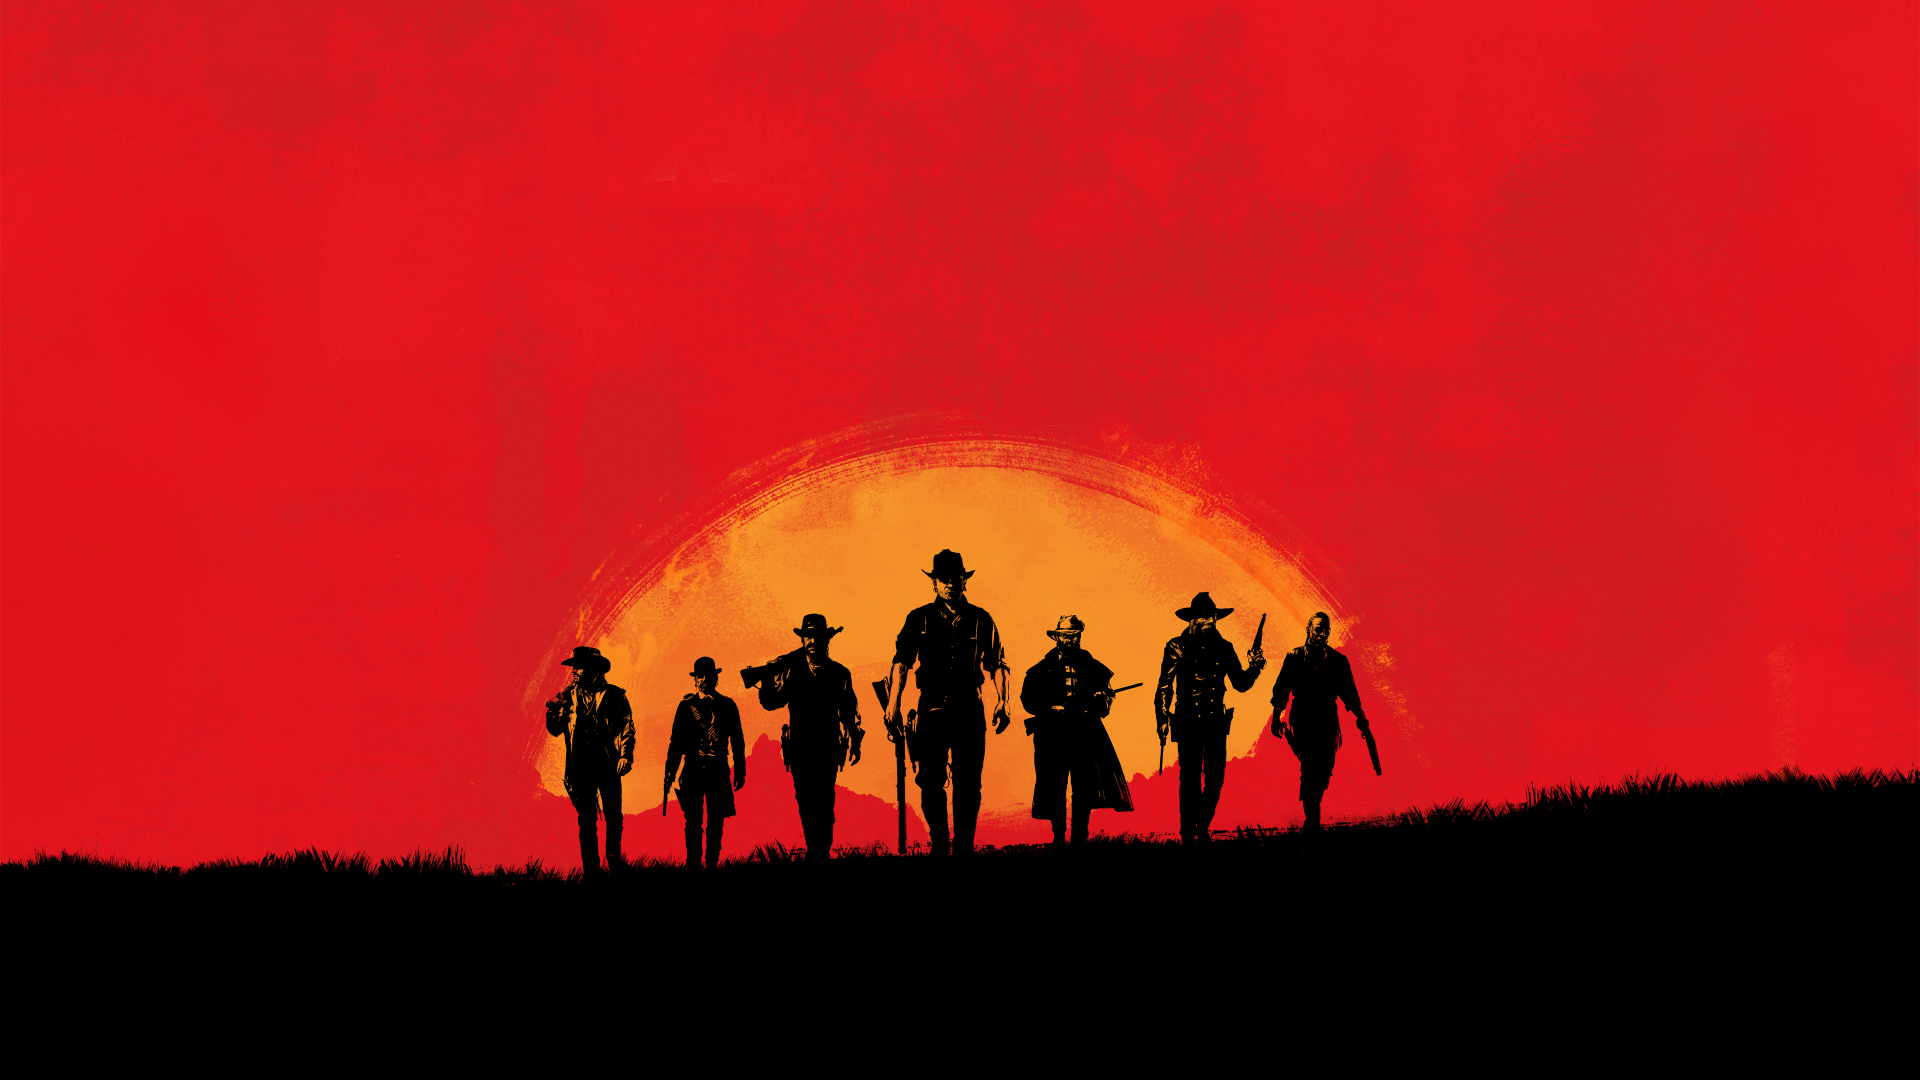 232 Red Dead Redemption 2 Hd Wallpapers Background Images Wallpaper Abyss